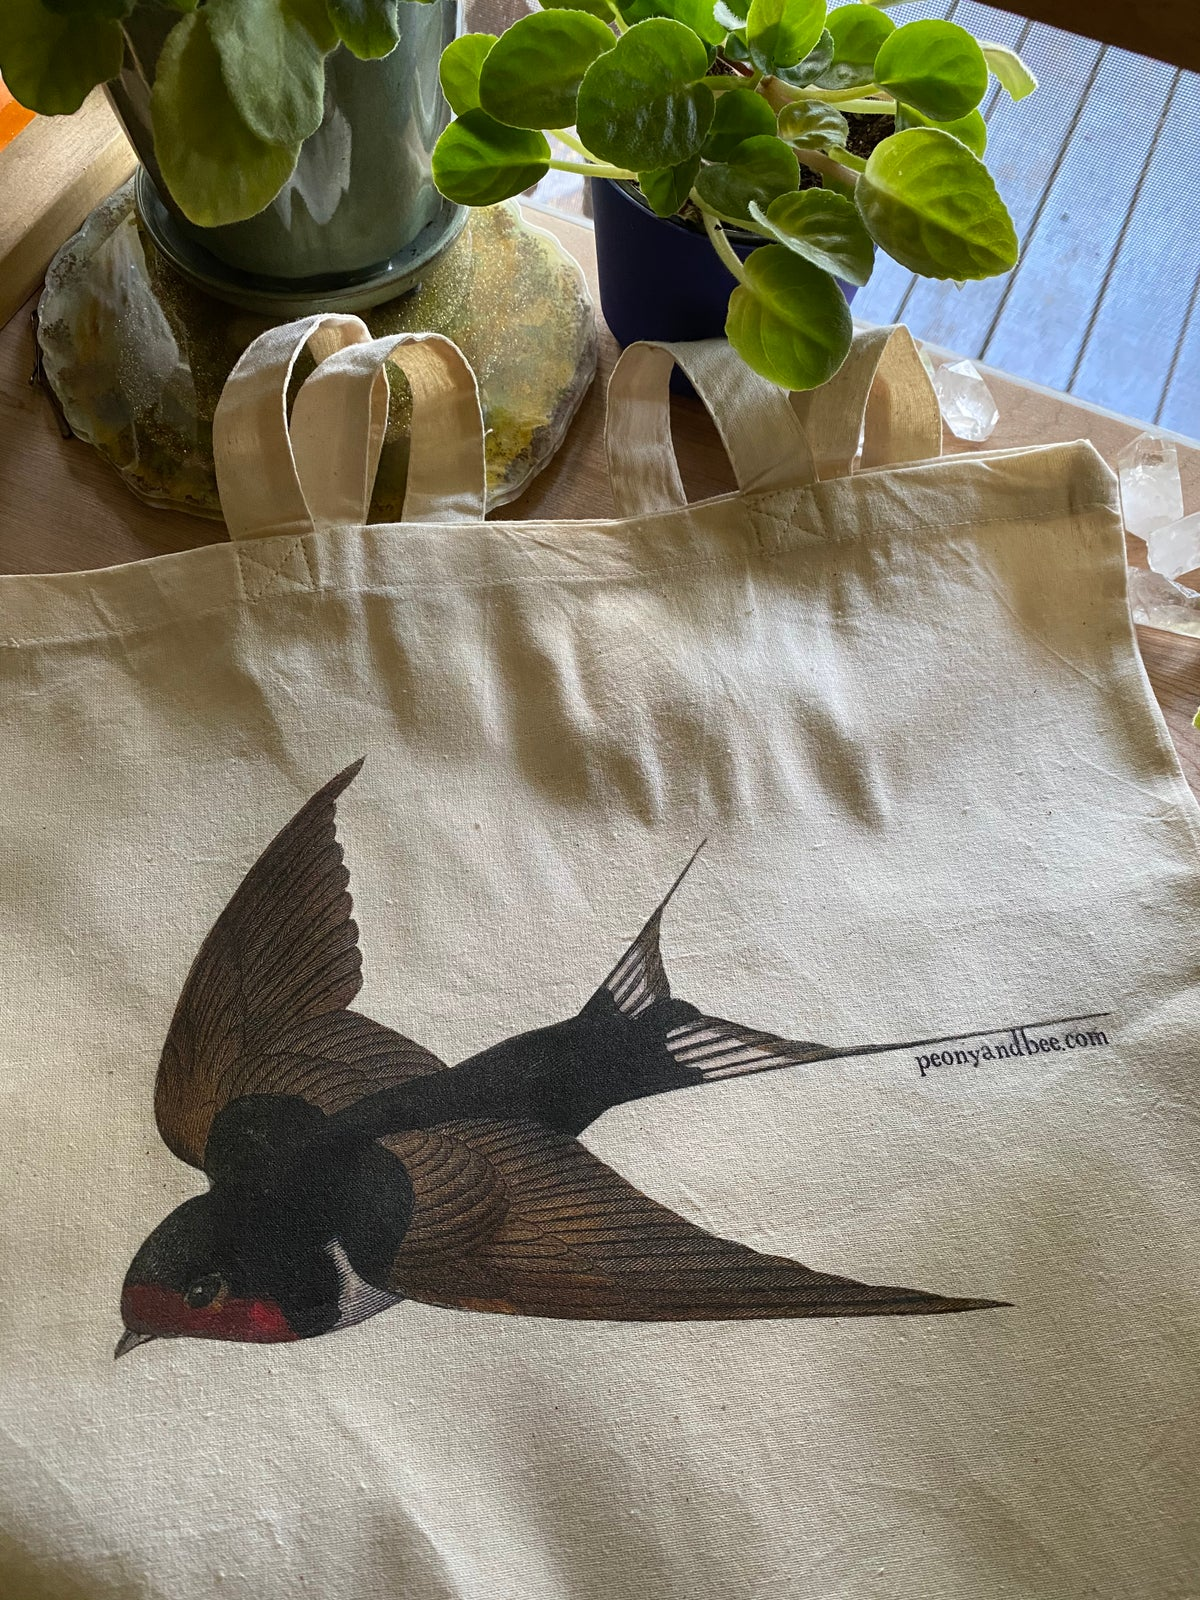 Image of Lightweight Canvas Tote - Swallow